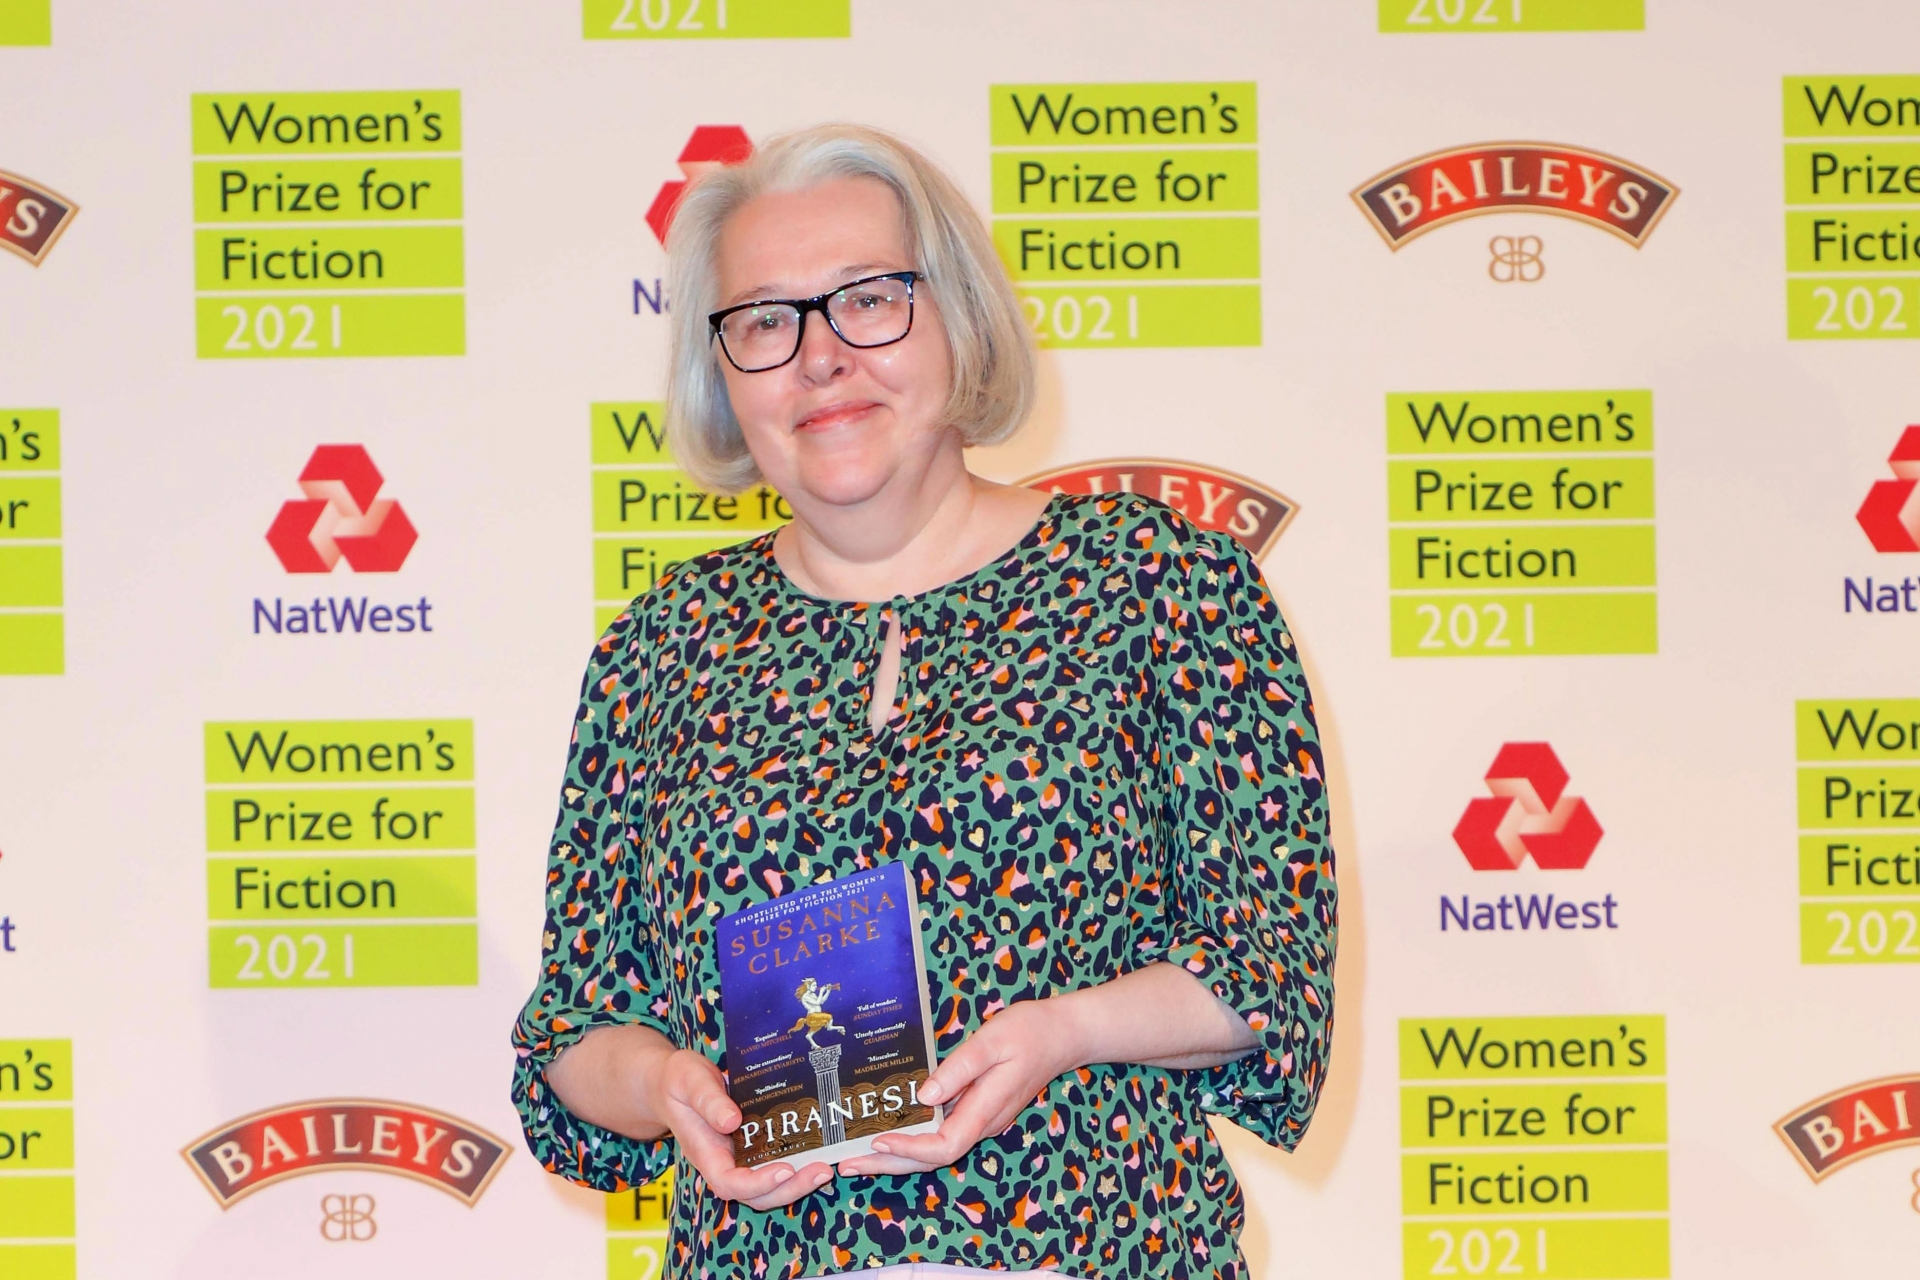 Susanna Clarke wins the 2021 Women's Prize for Fiction with her second novel Piranesi